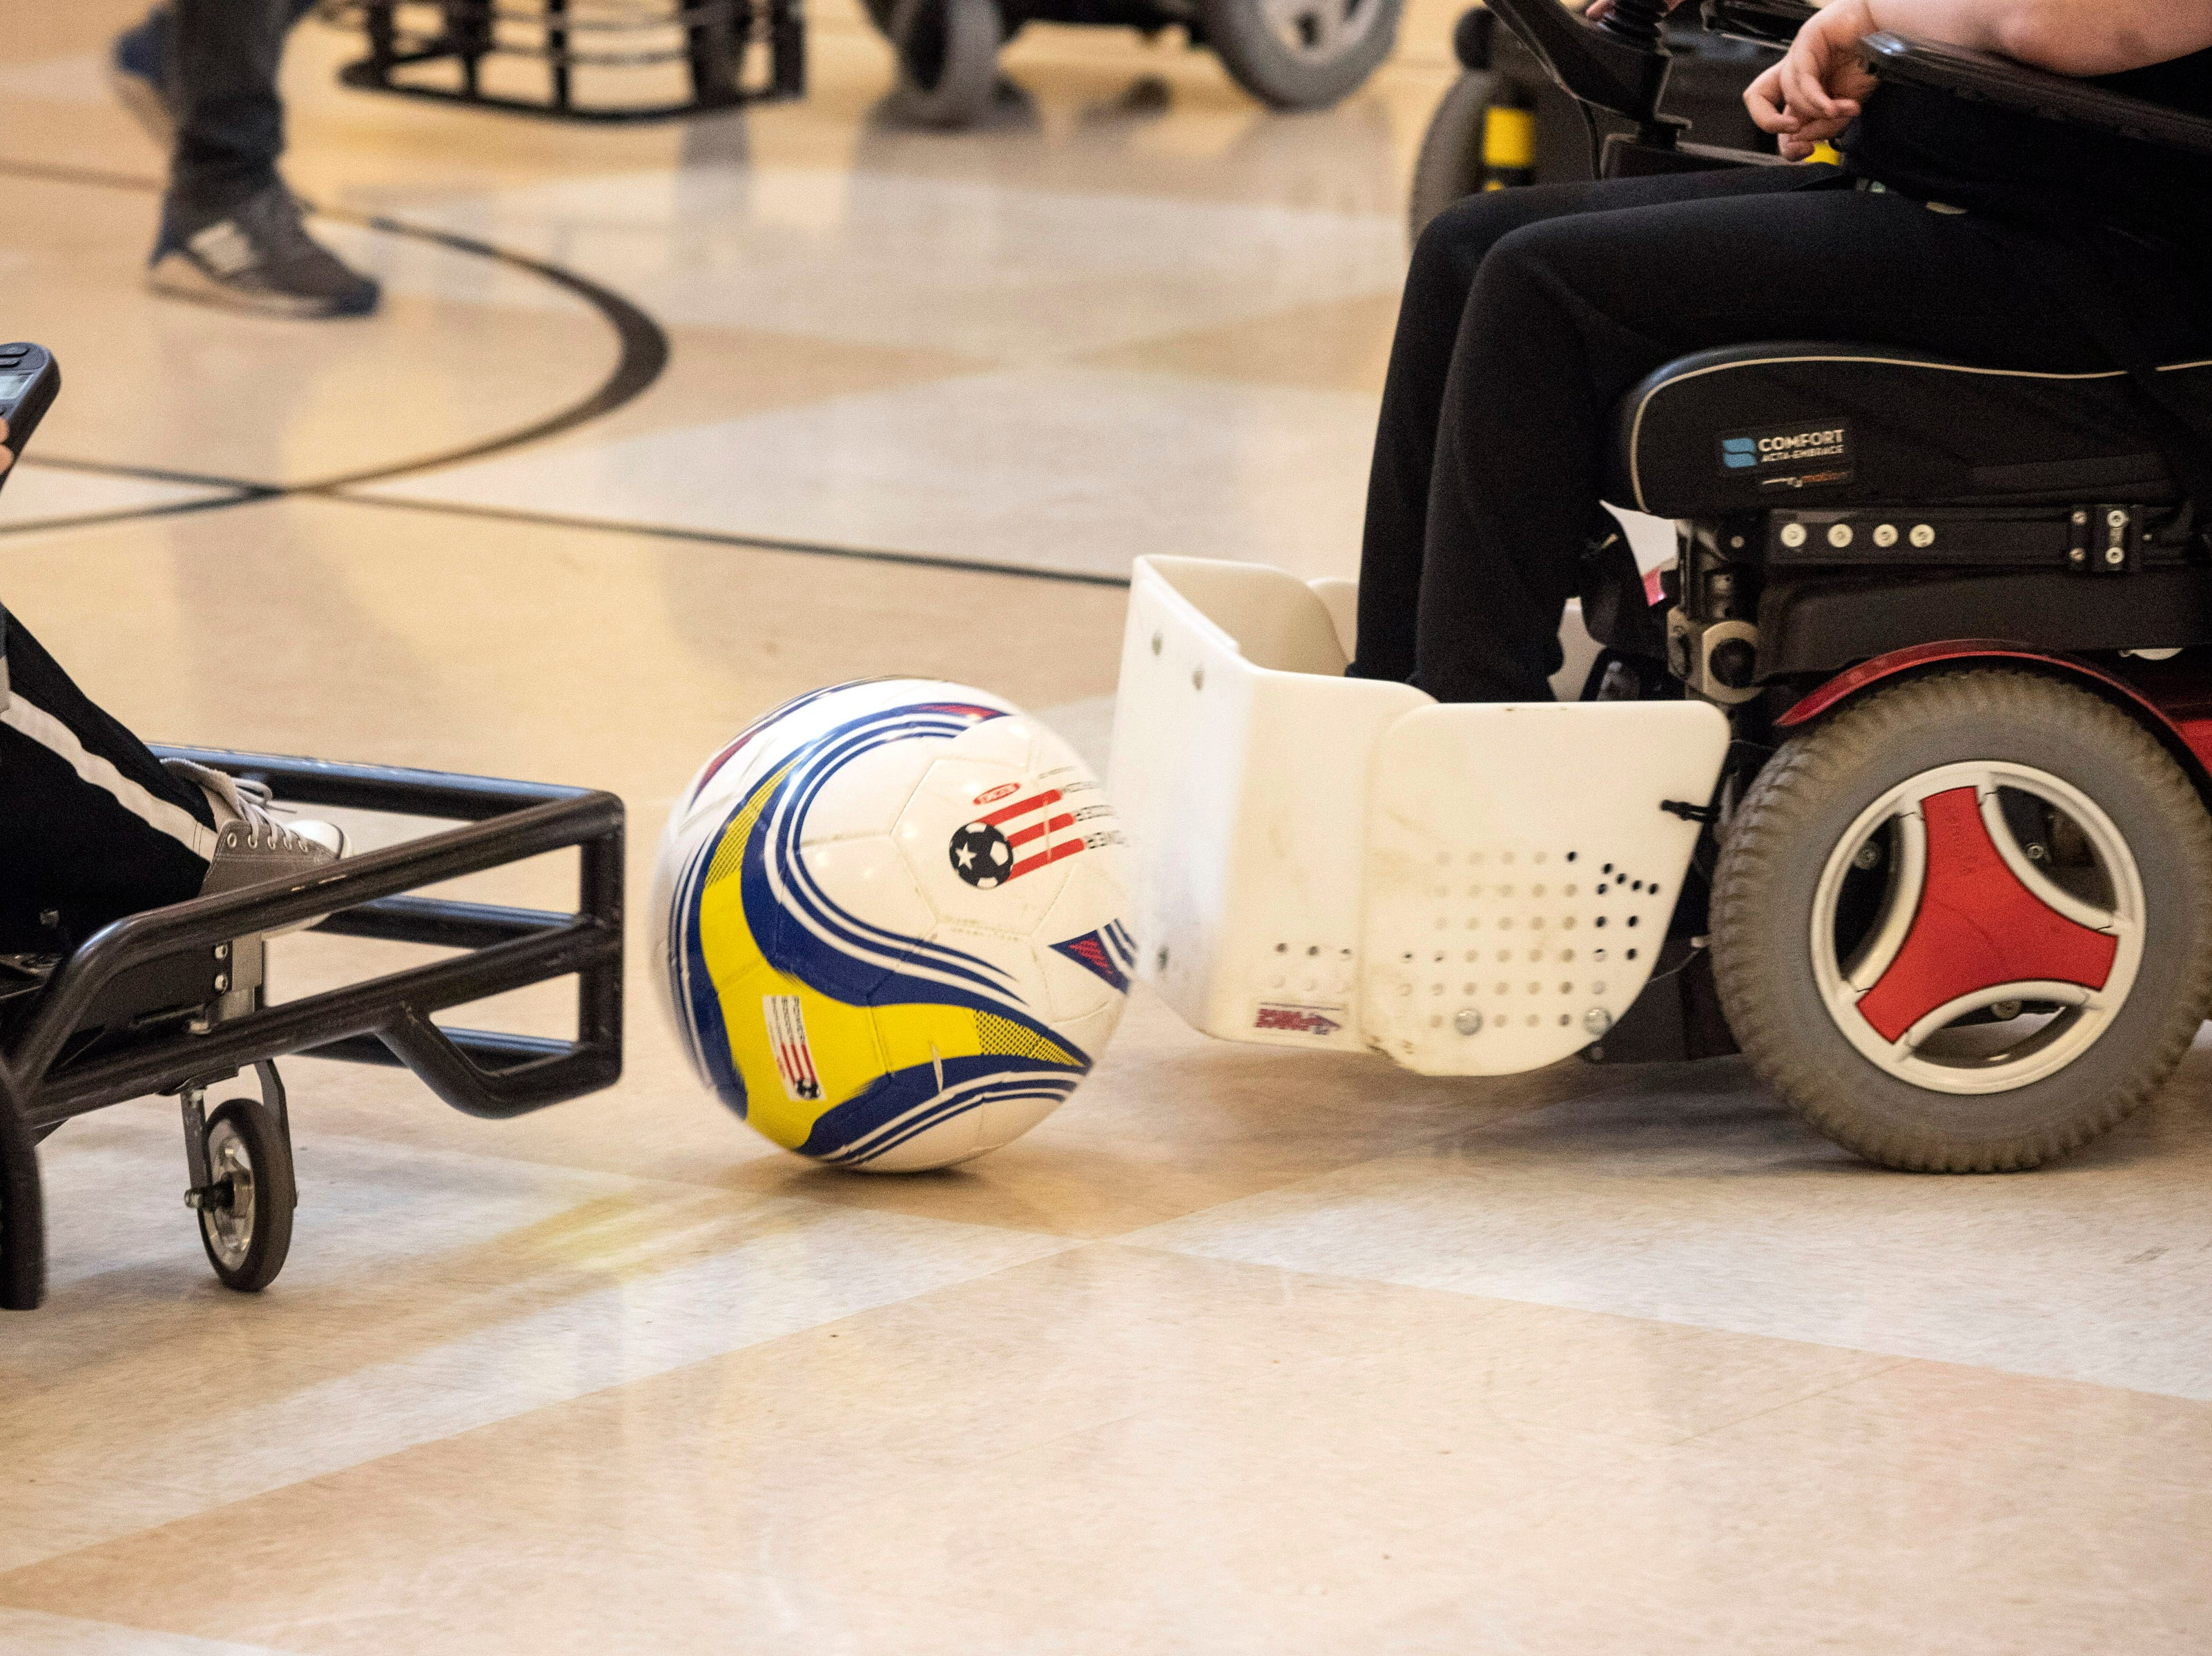 A slightly larger ball is used to play powerchair soccer. April 20, 2019